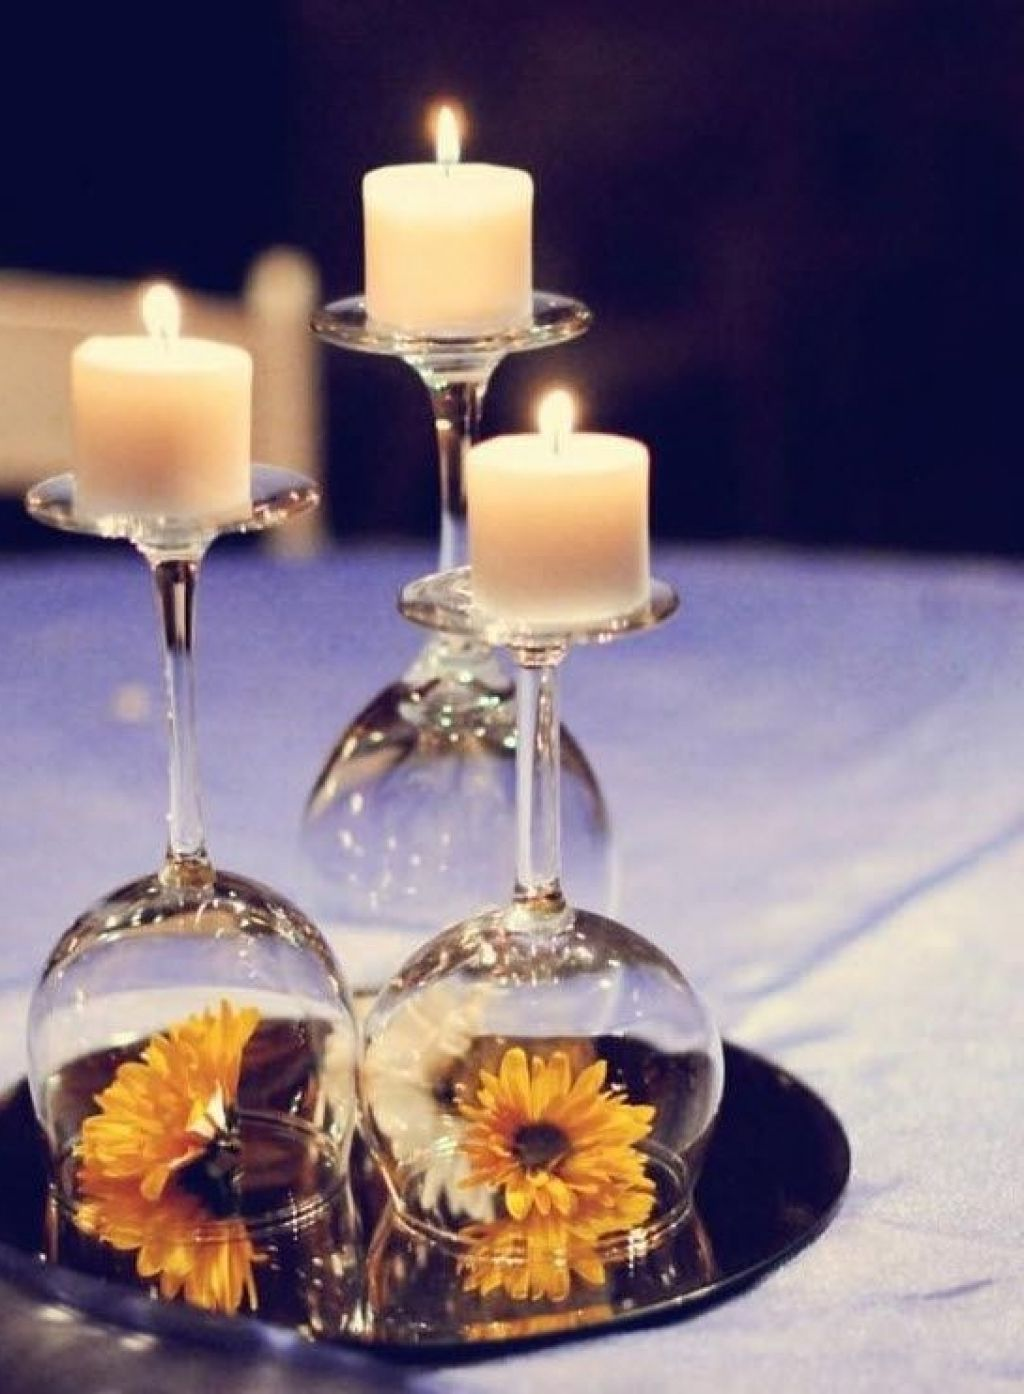 12 wedding centerpiece ideas from pinterest wine glass for Wine centerpiece ideas